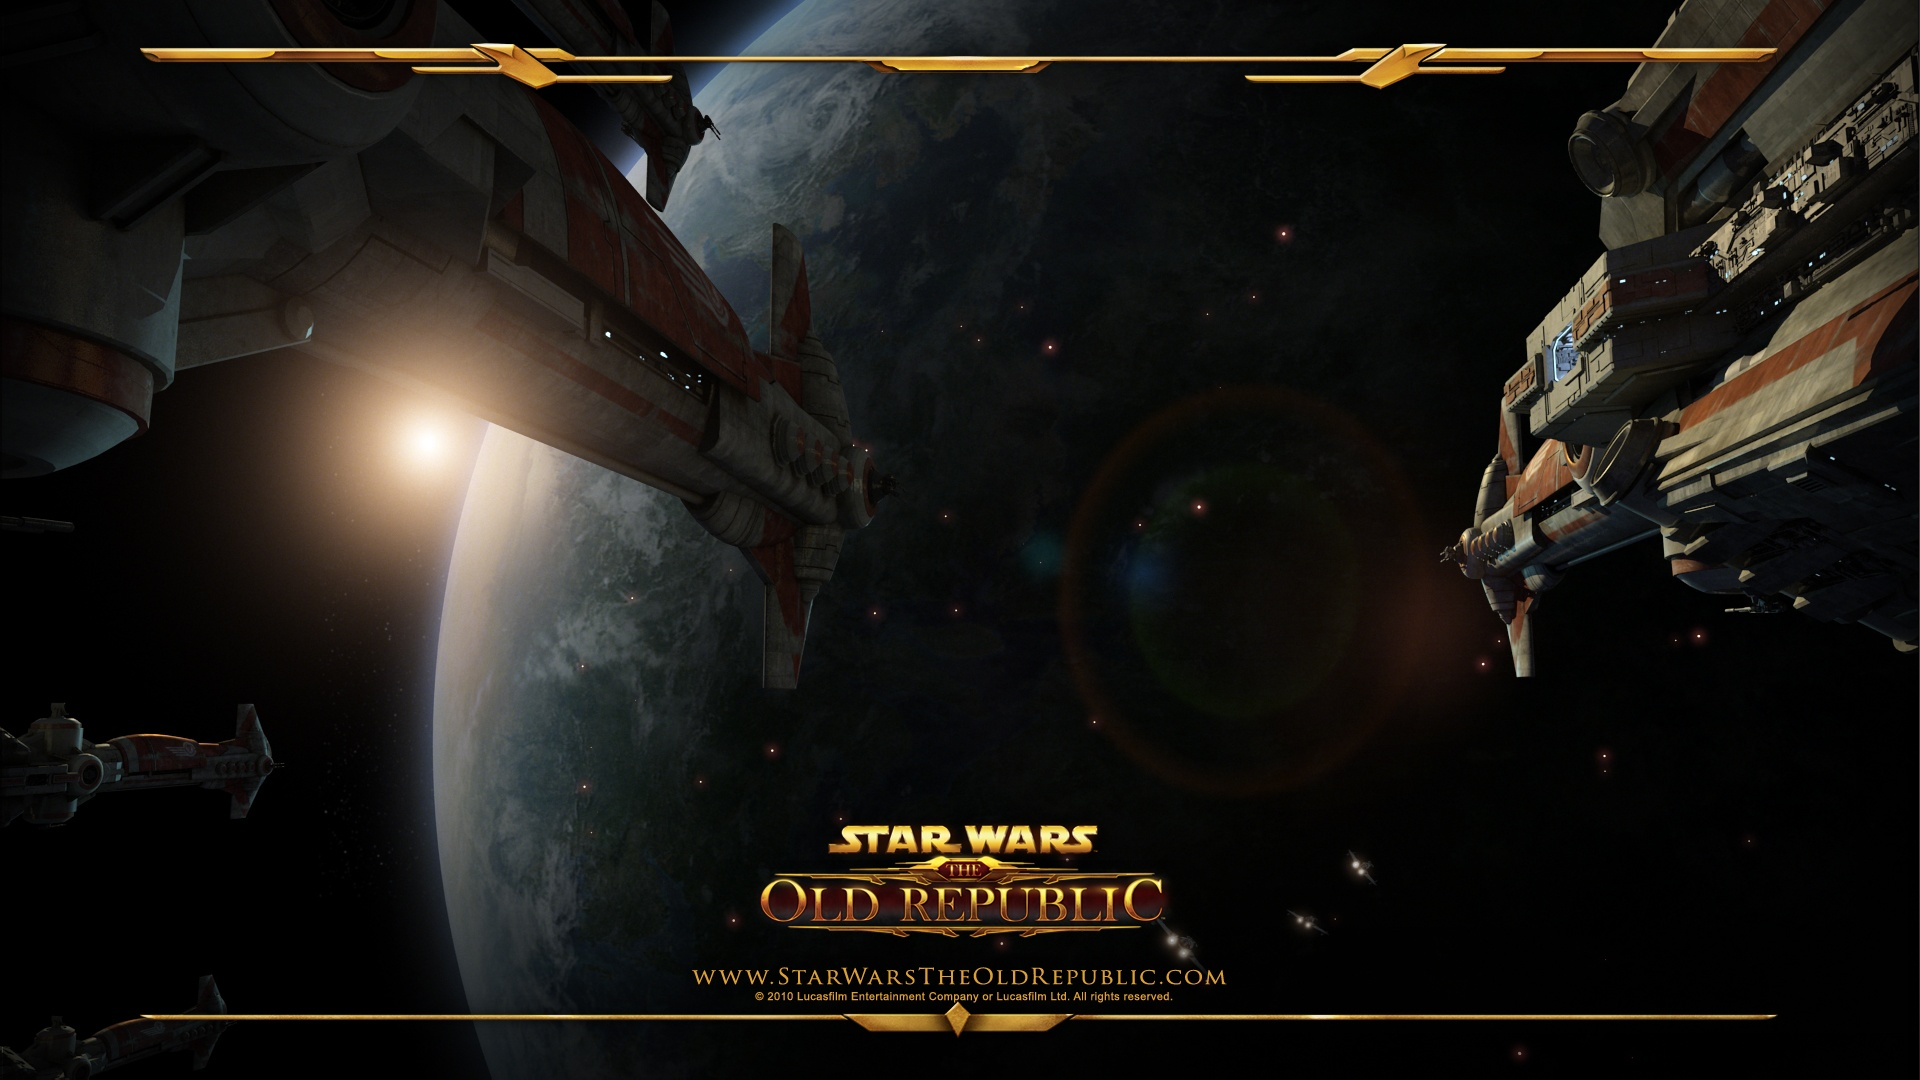 Star Wars The Old Republic Wallpaper Space Battle Old Republic